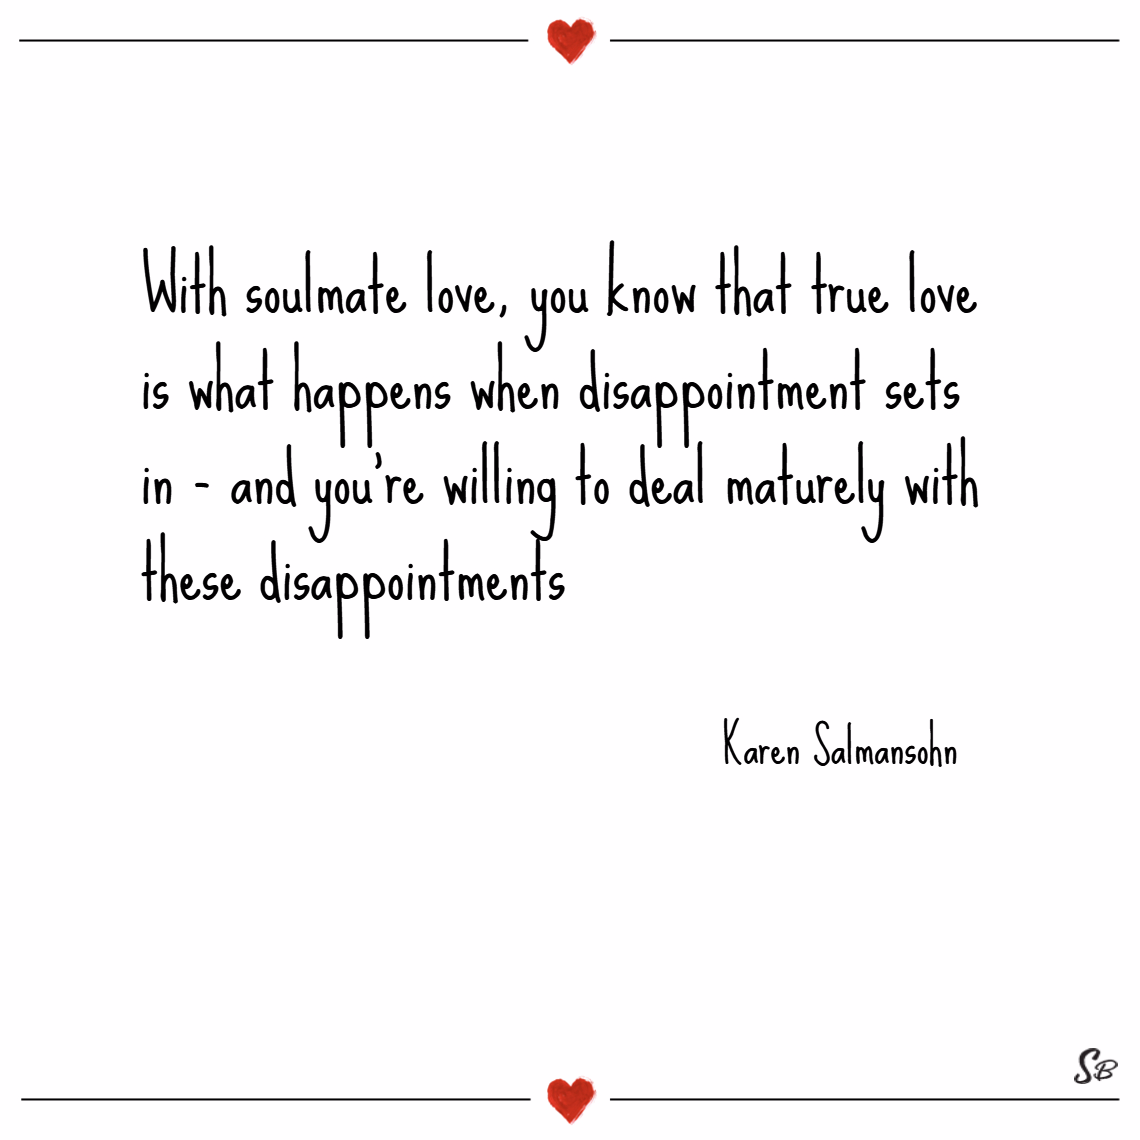 With soulmate love, you know that true love is what happens when disappointment sets in and you're willing to deal maturely with these disappointments. – karen salmansohn